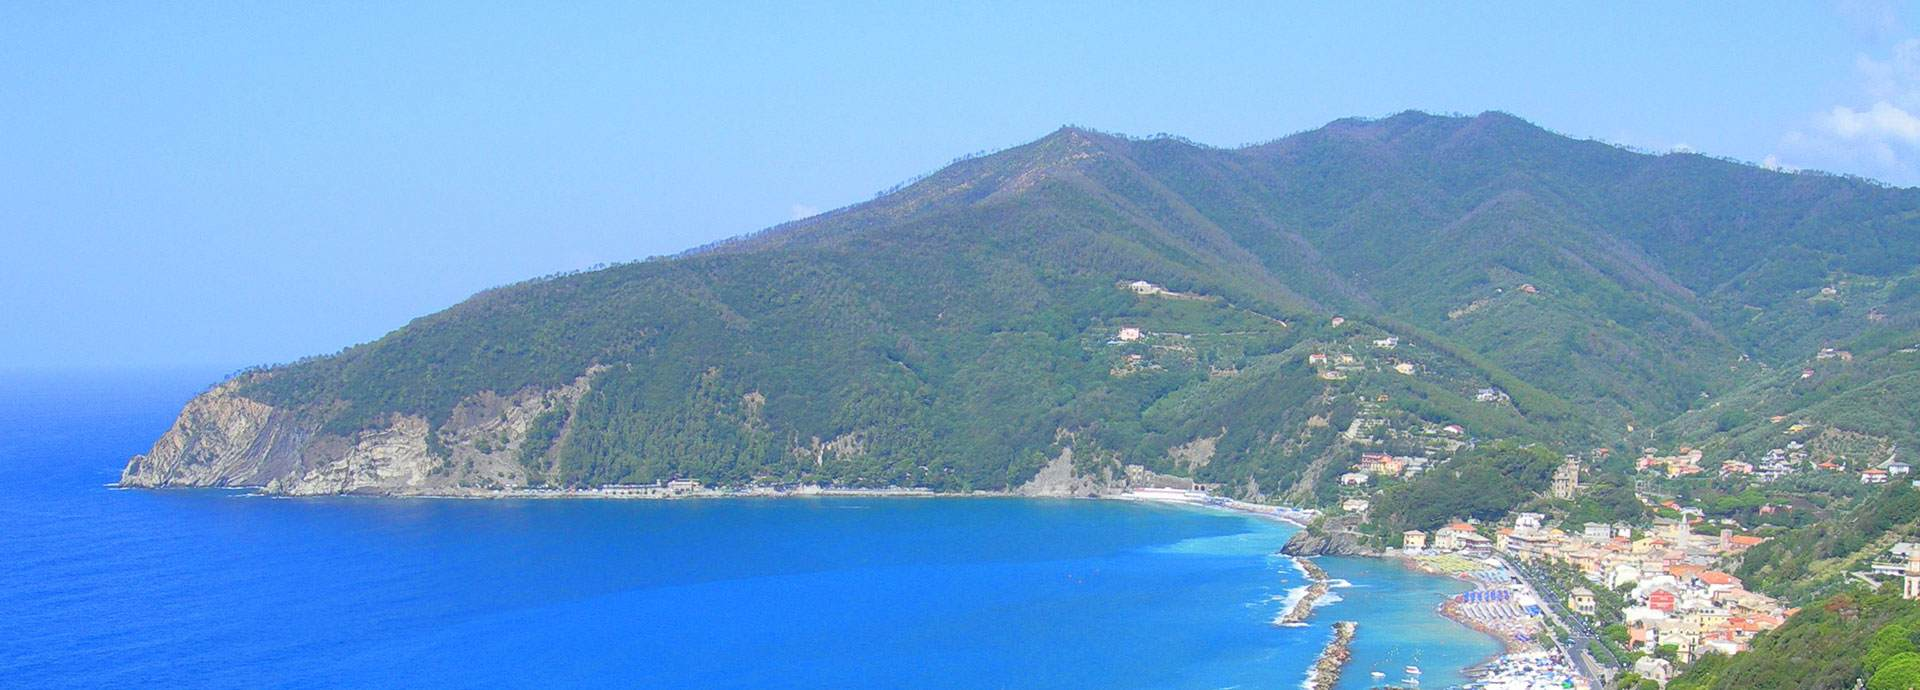 Moneglia_panorama